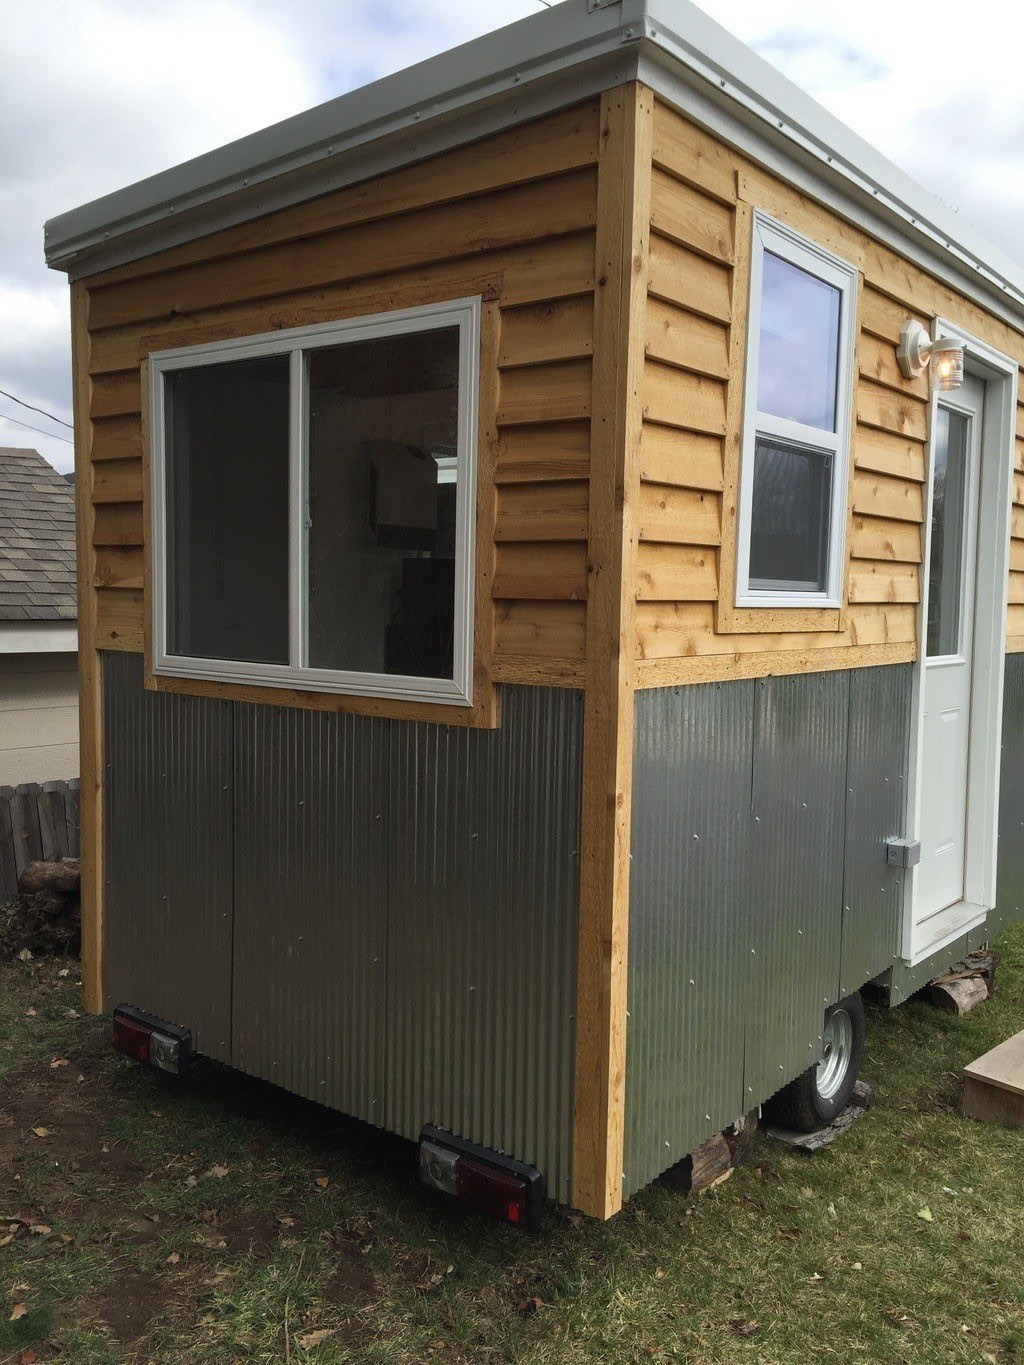 92-square-feet-tiny-house-2